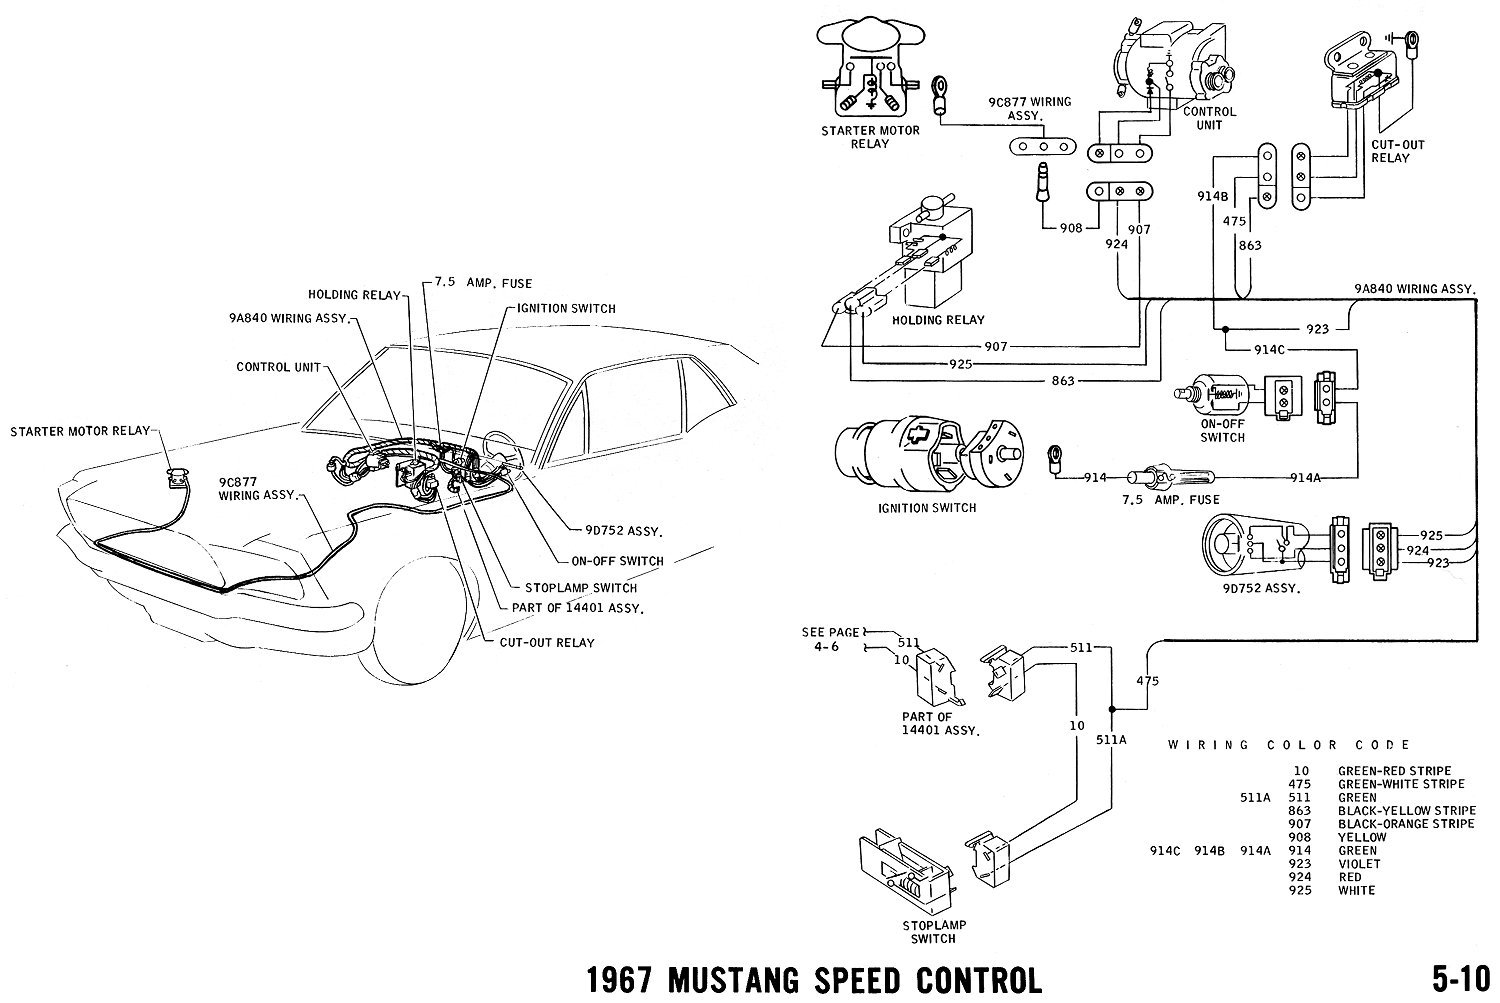 67speed 1967 mustang wiring and vacuum diagrams average joe restoration 1967 Mustang Wiring Schematic at alyssarenee.co